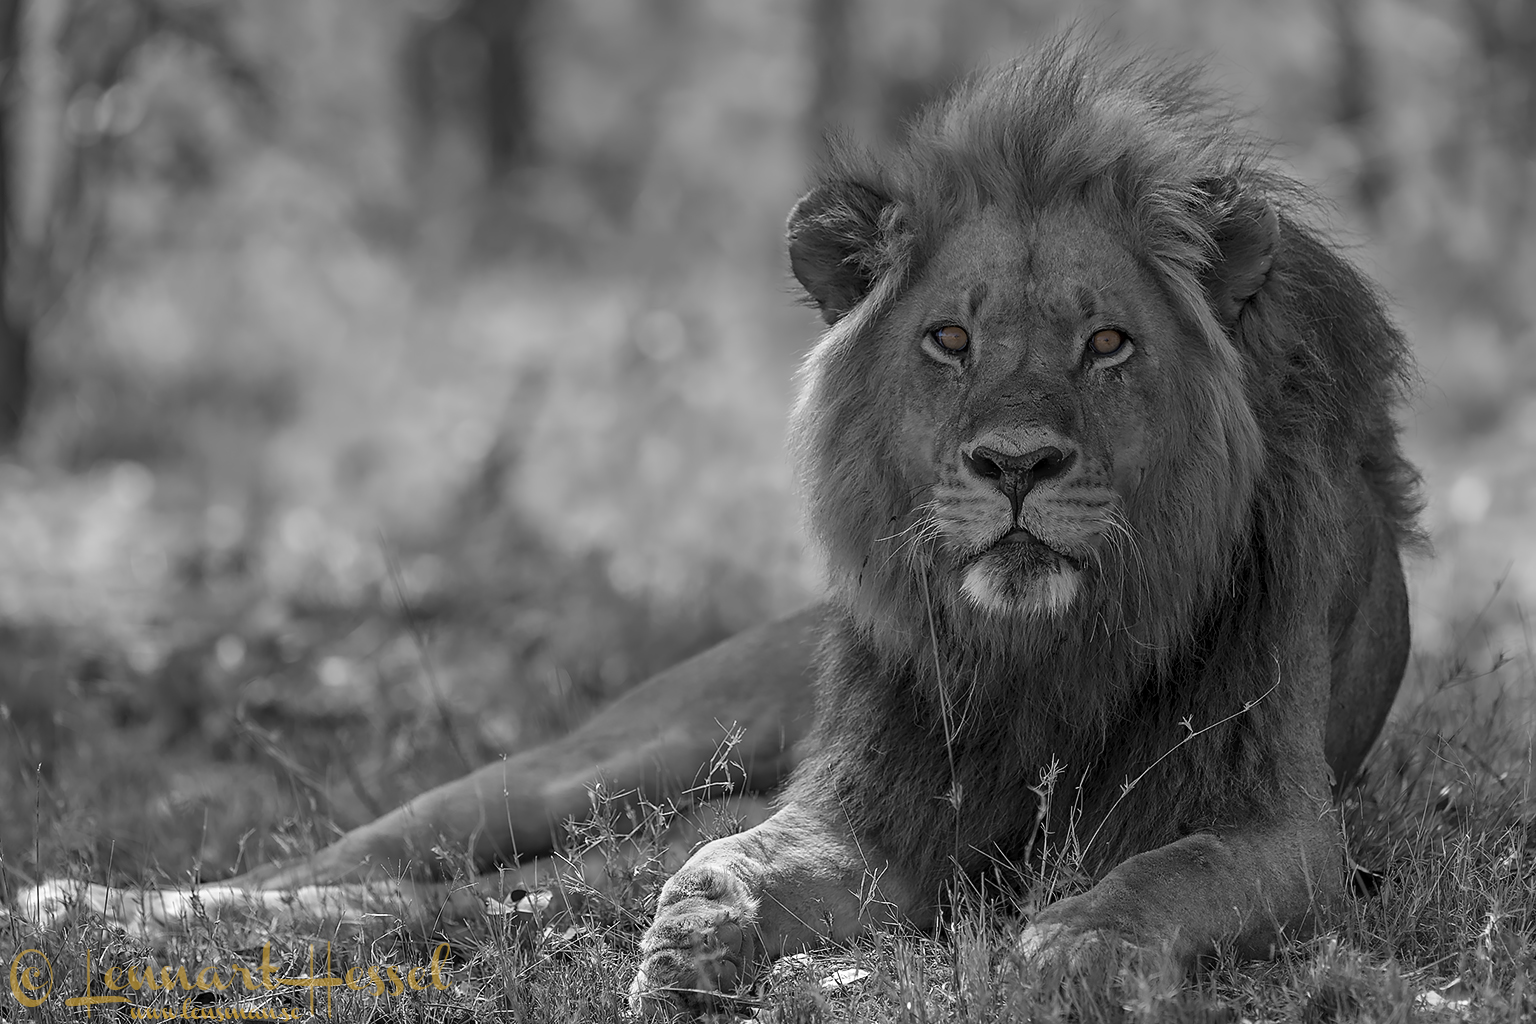 Lion images black and white - photo#27